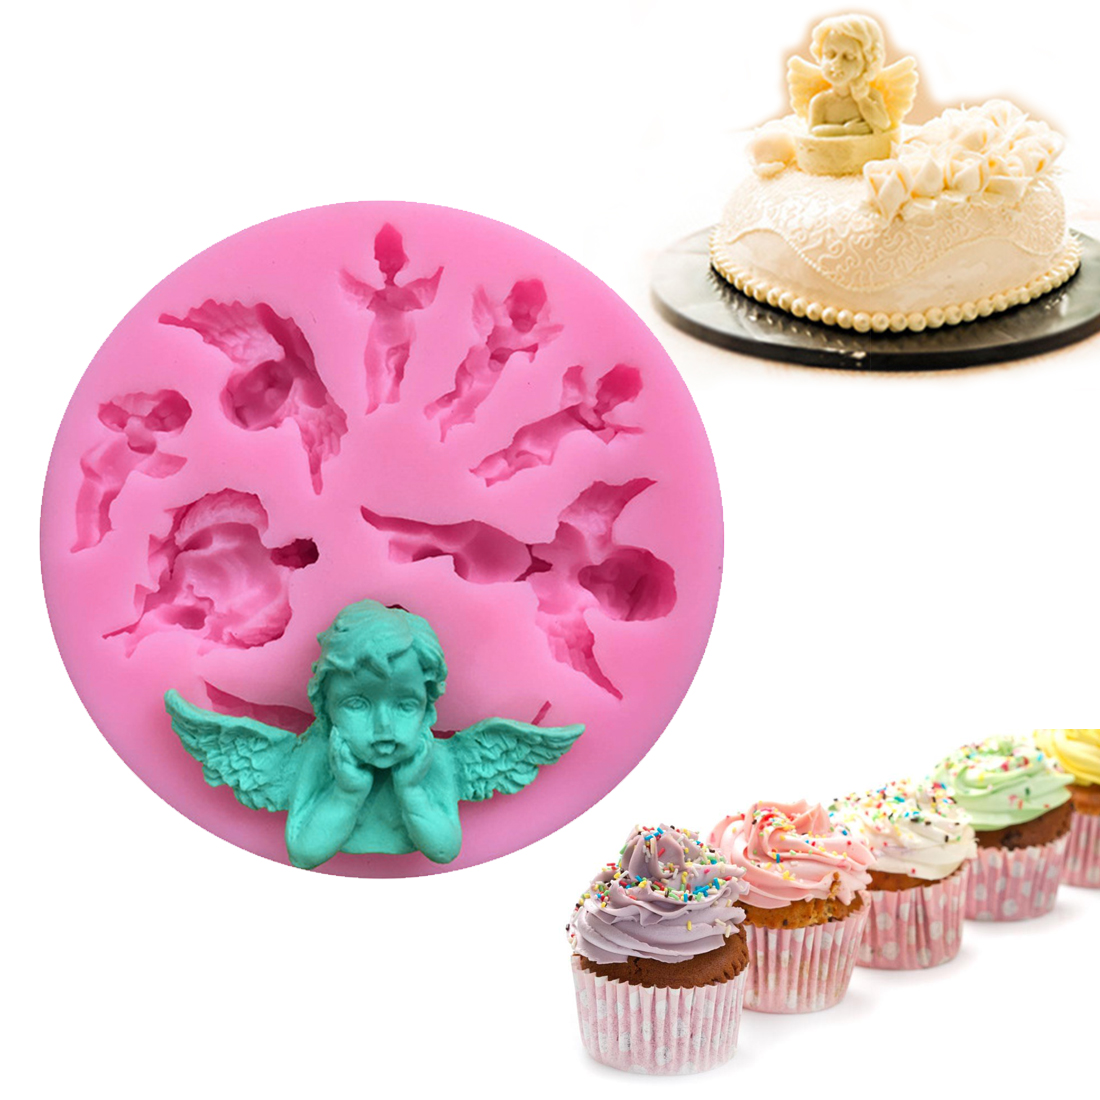 Baking Forms 1PC Cake Pan Angel Baby Silicone Soap Mold Fondant Cake Decorating Tools Kitchen Chocolate DIY Candy Molds